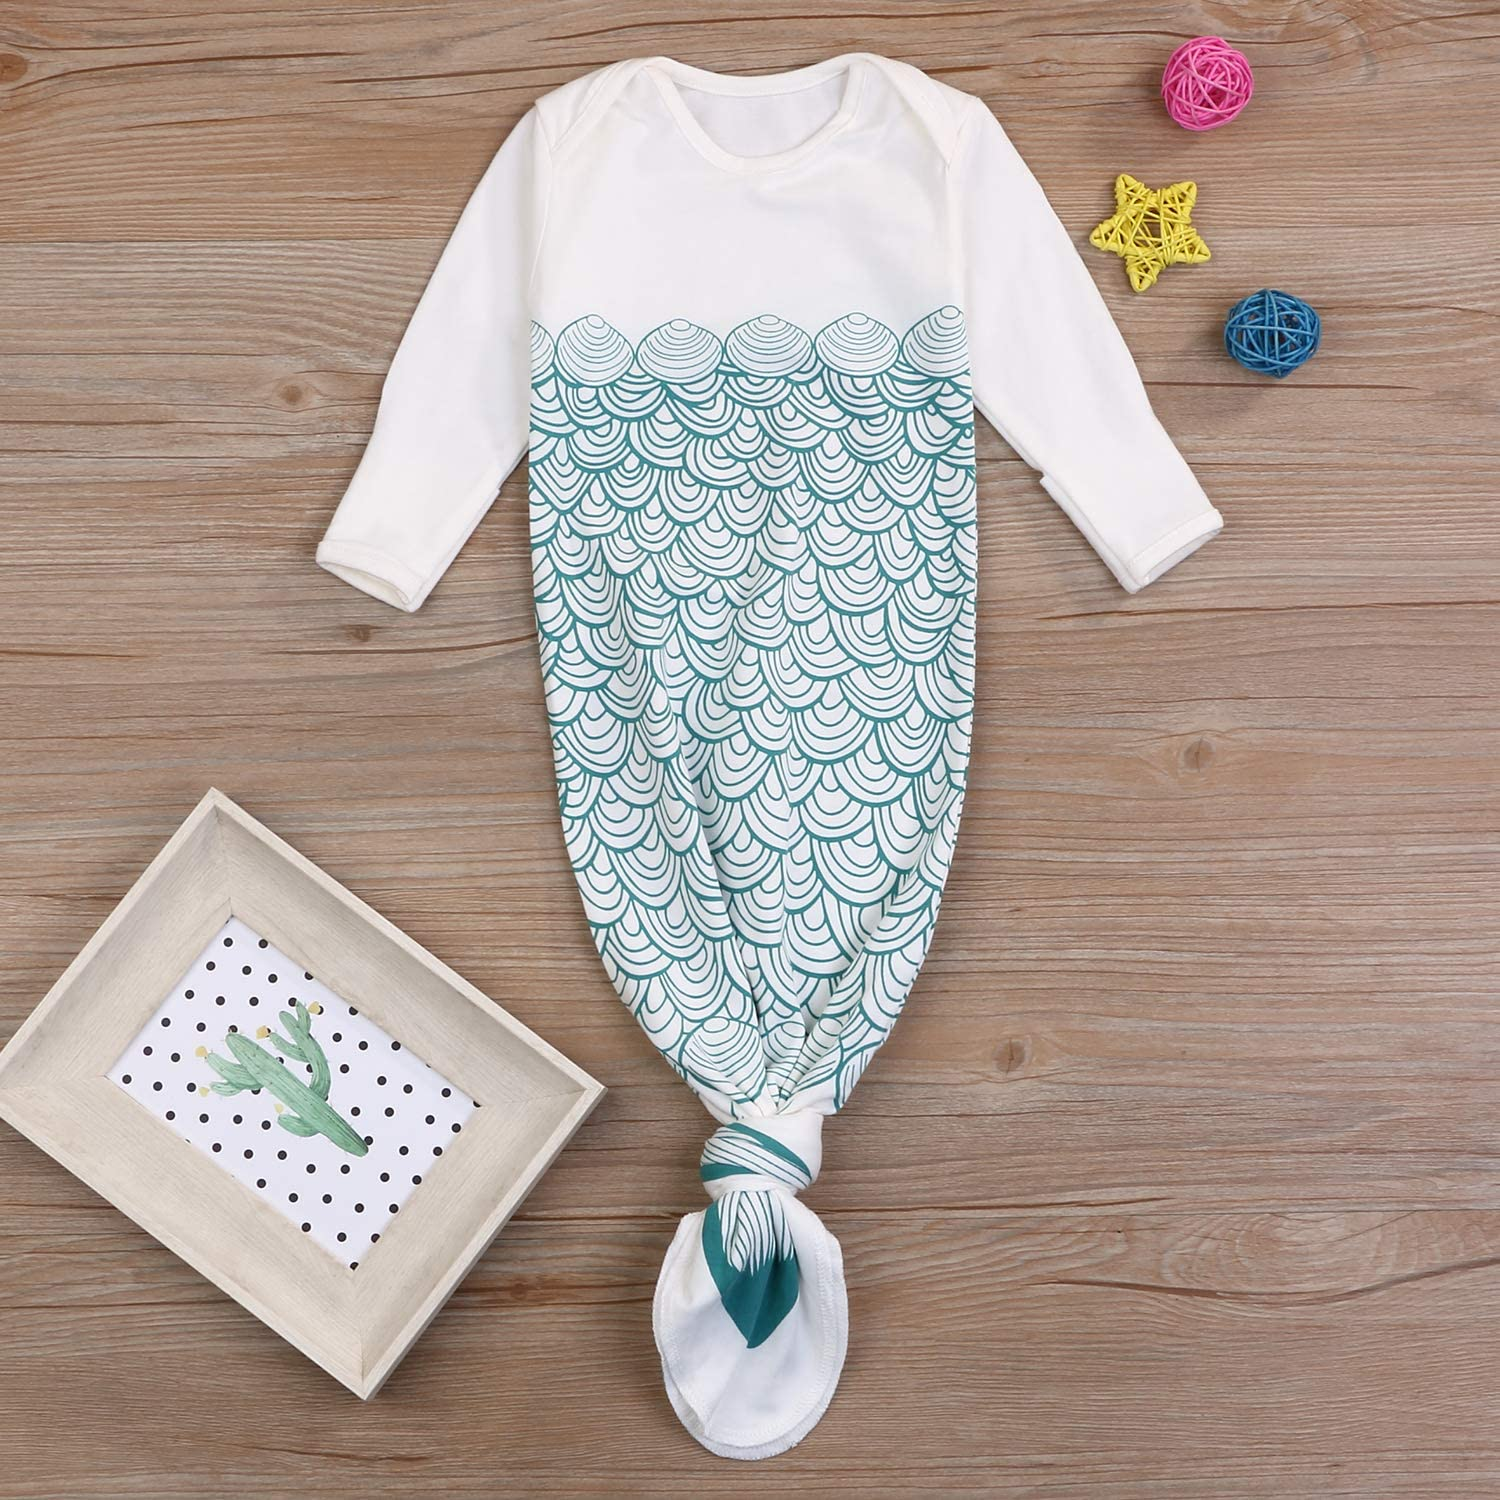 Newborn Cotton Gowns Baby Sleep Bag Pajamas Long Sleeves Mermaid Tail Baby Wearable Blanket Infant Sleepers Sleepwear